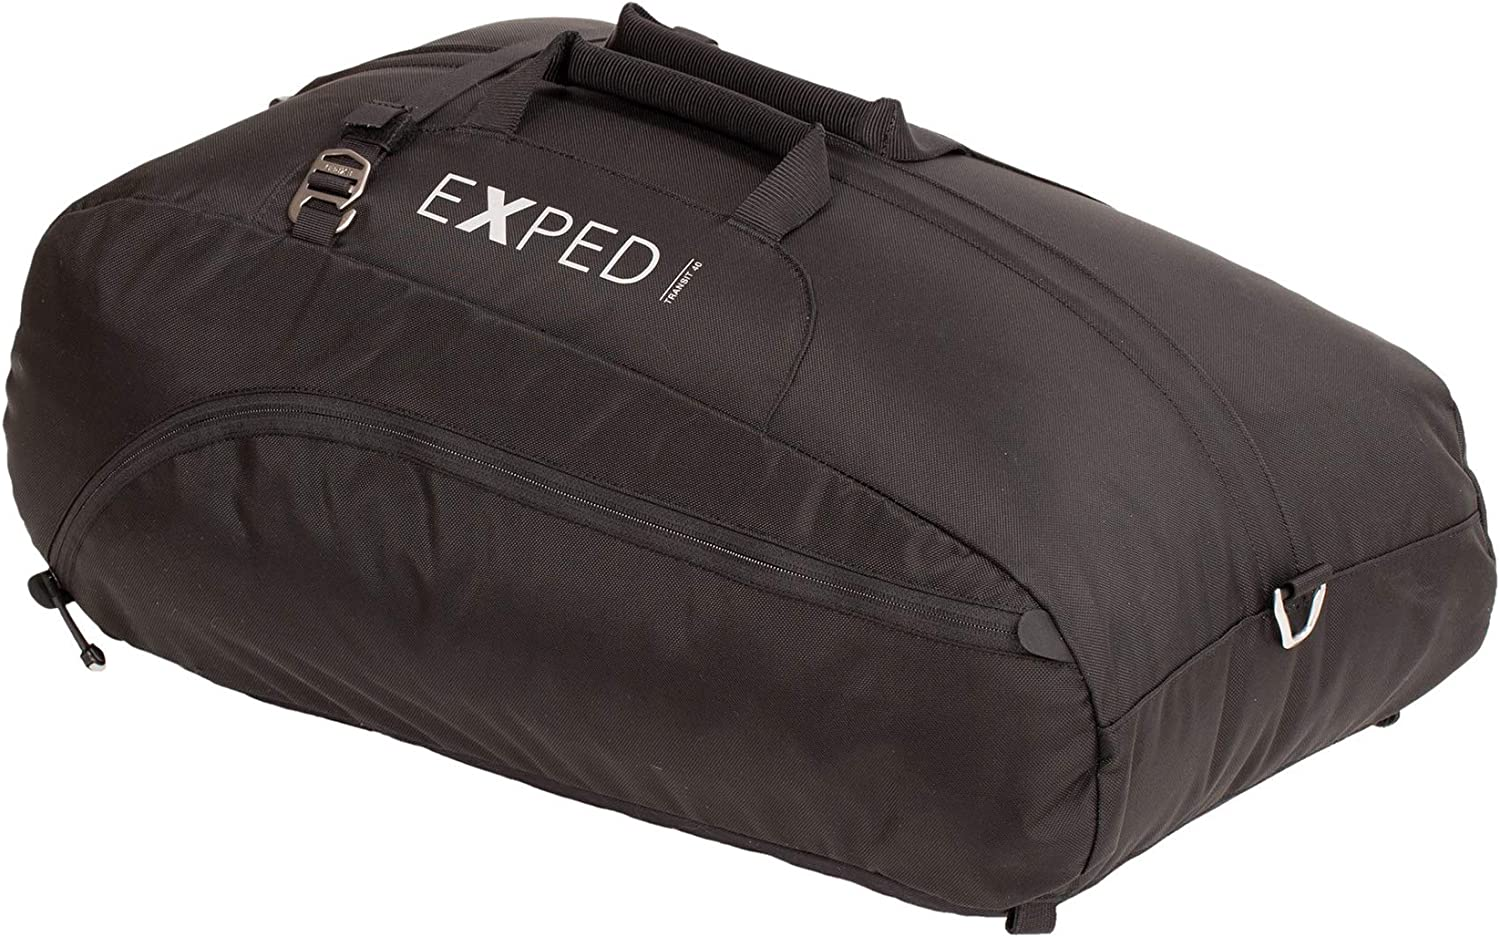 Exped Transit 40 Backpack